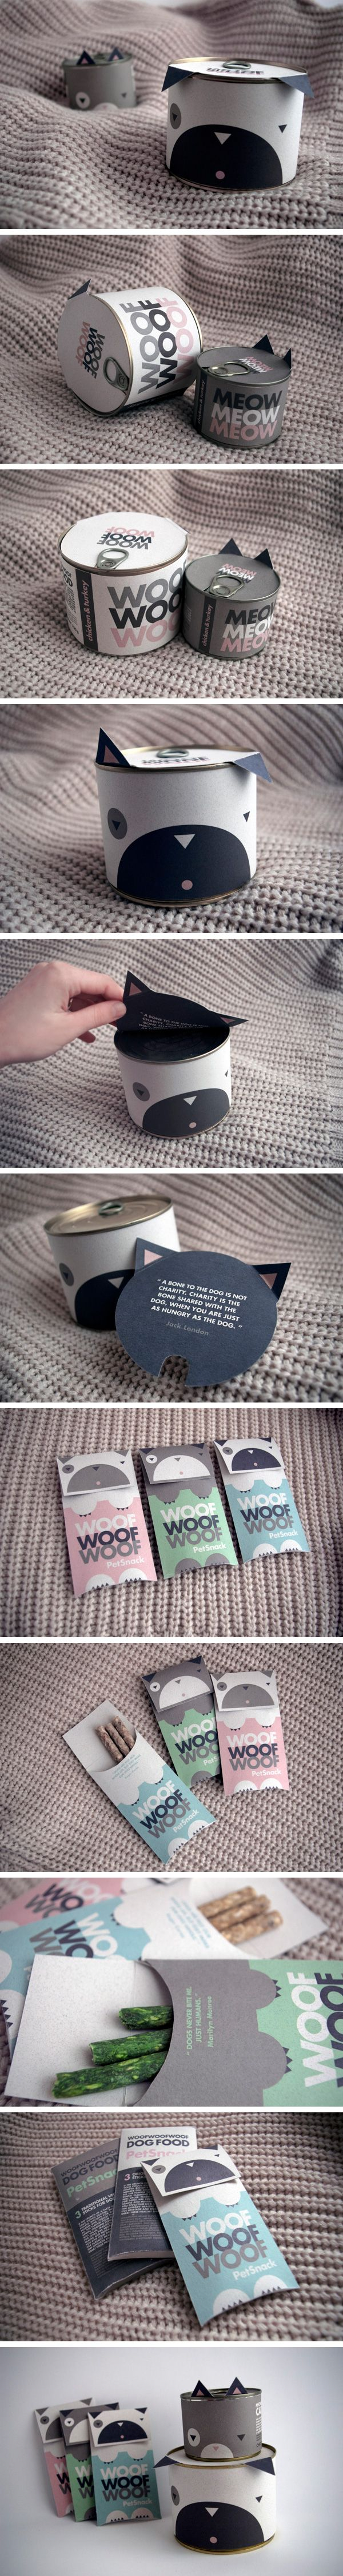 Just too cute #pet snack #packaging that suddenly became every popular PD